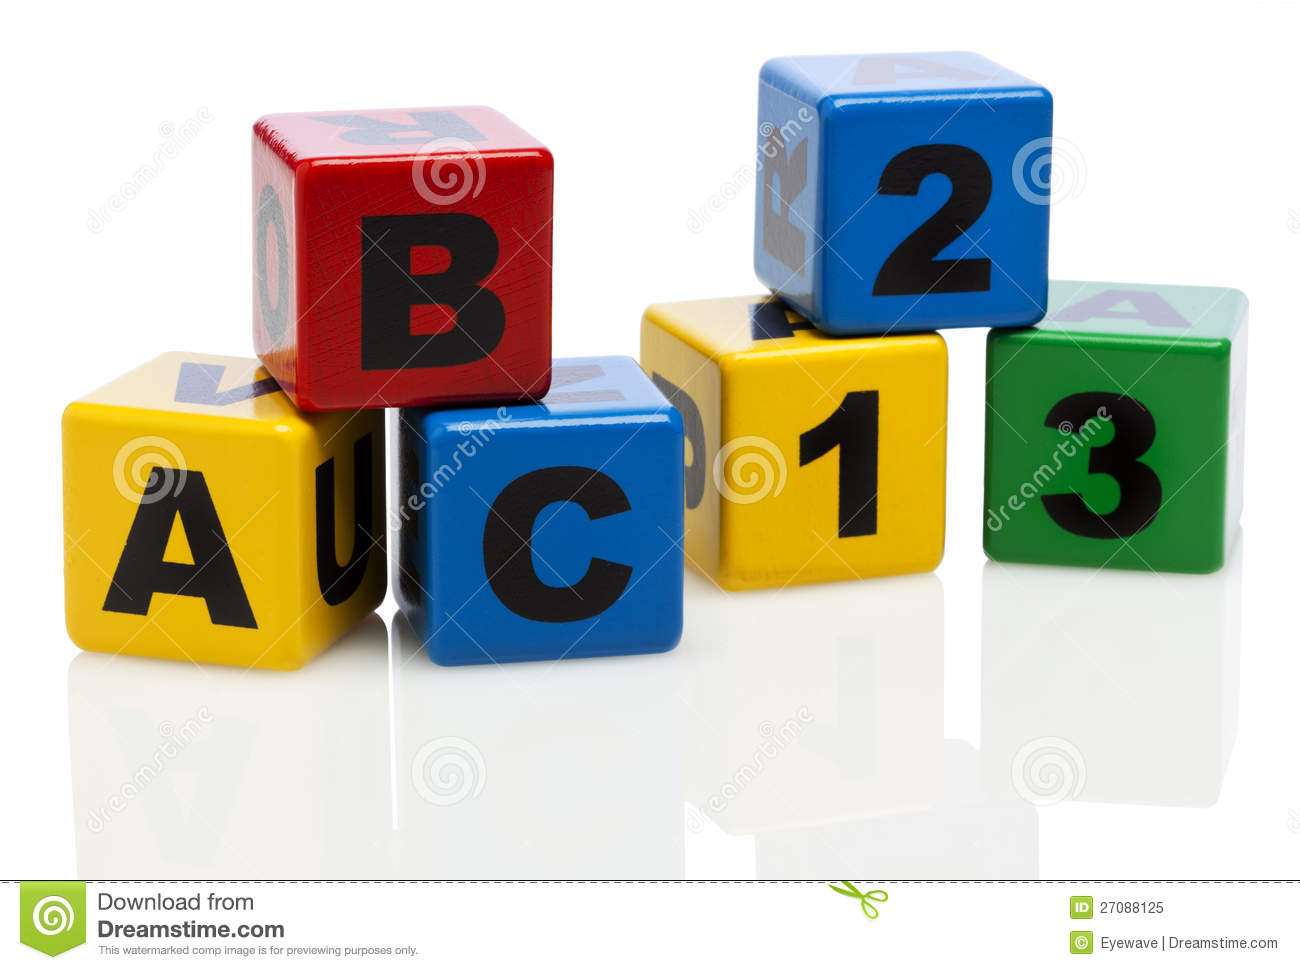 Alphabet Building Blocks Showing ABC And 123 Royalty Free Stock Photo ...